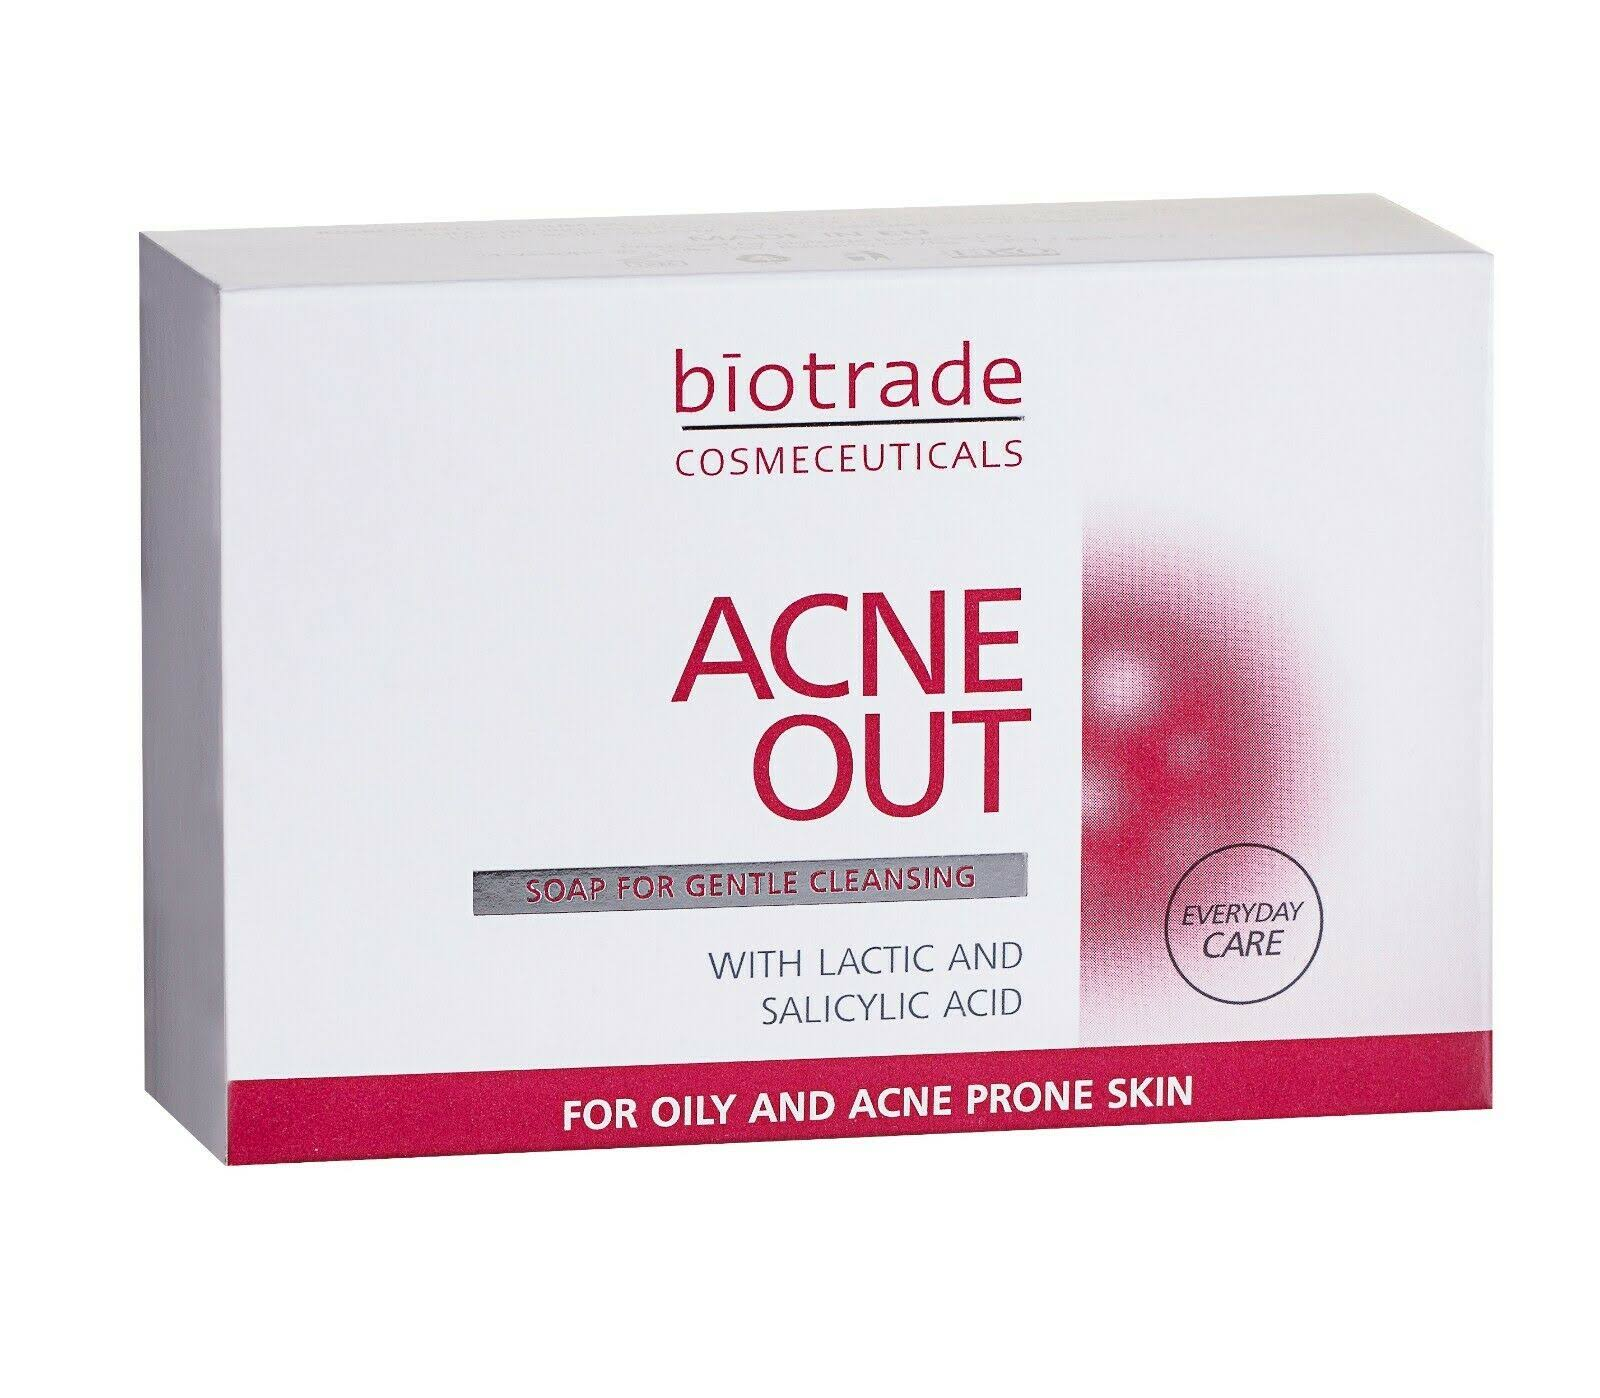 Acne Out Soap - with Lactic and Salicylic Acid, 100g